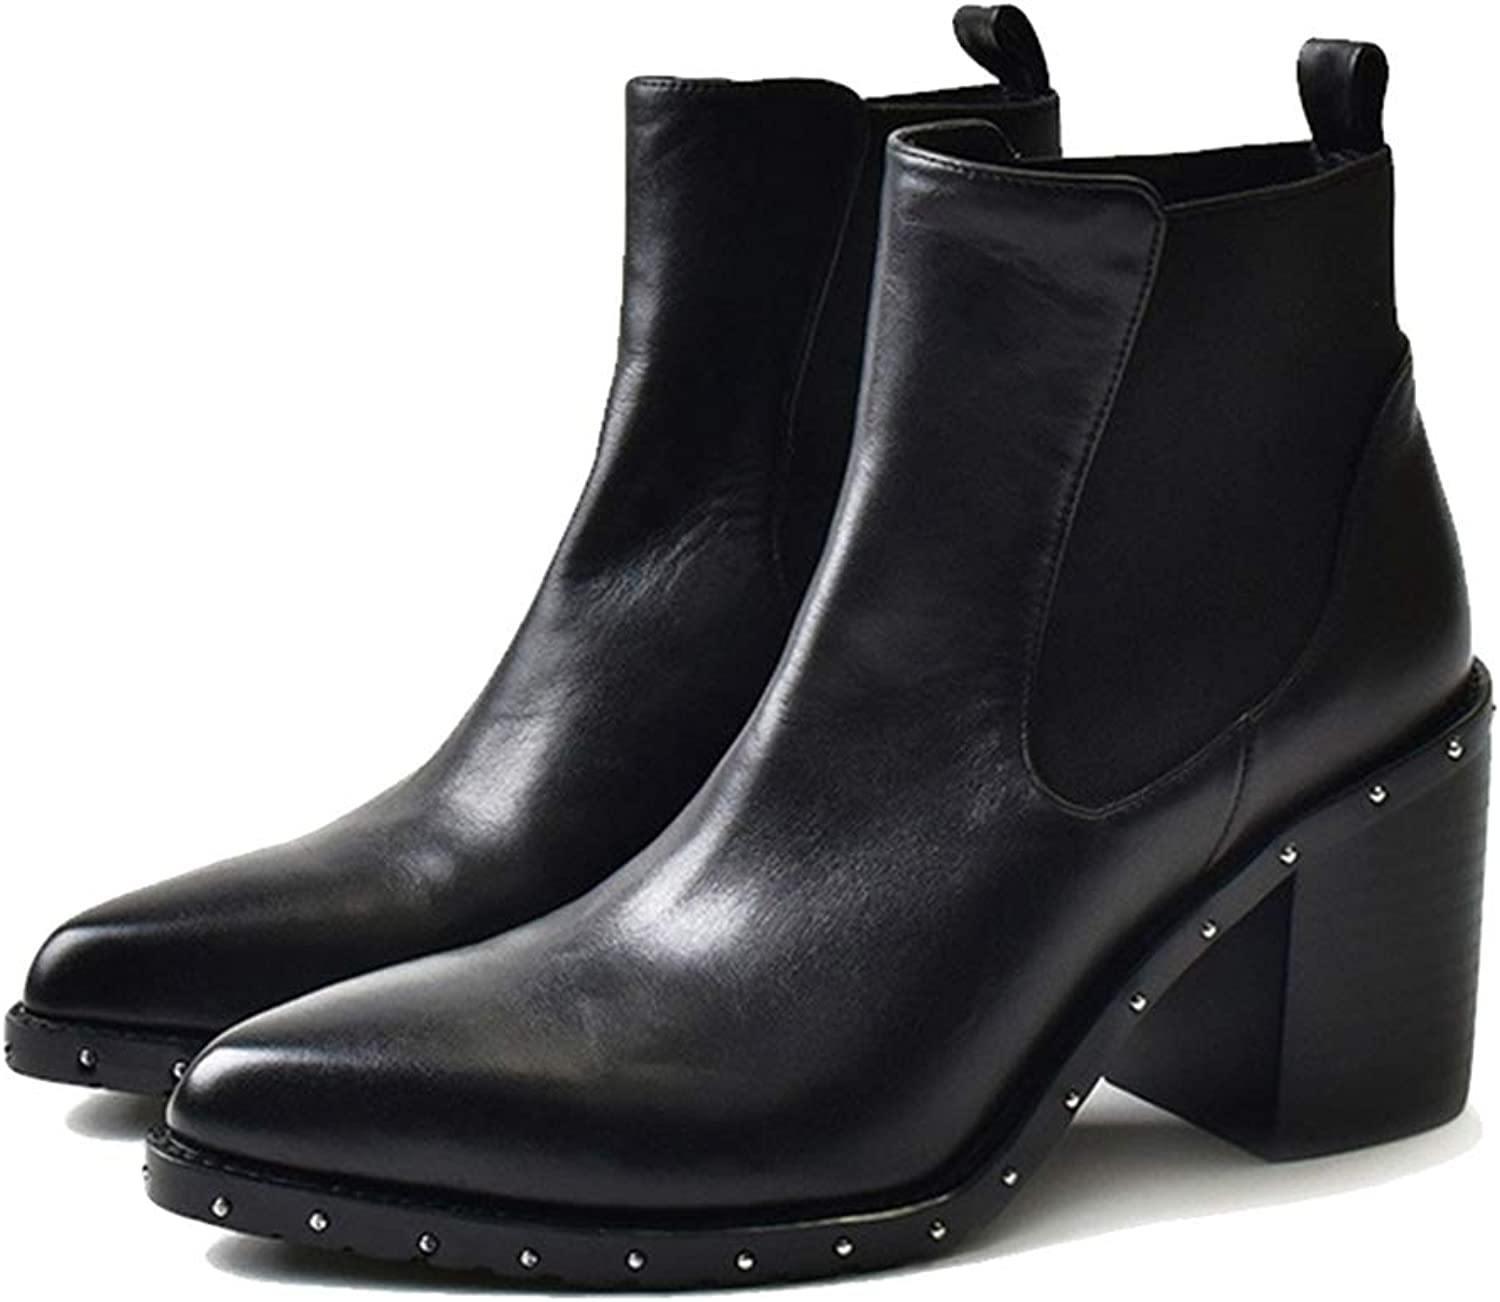 Kyle Walsh Pa Women Ankle Boots Slip On Casual shoes,Gladiator Round Toe